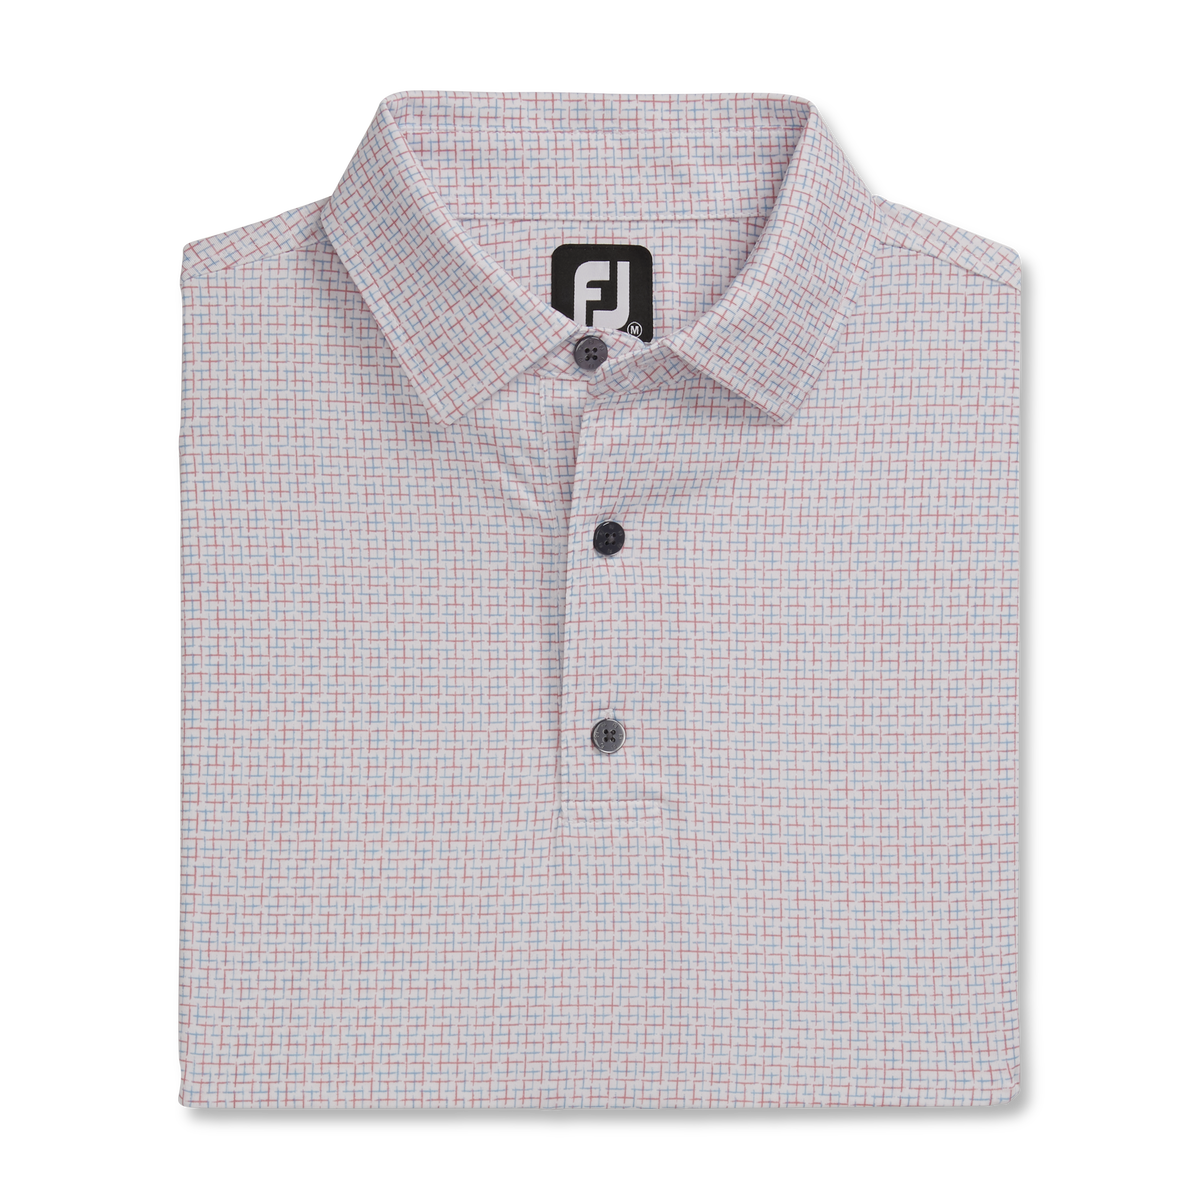 Lisle Open Weave Print Self Collar